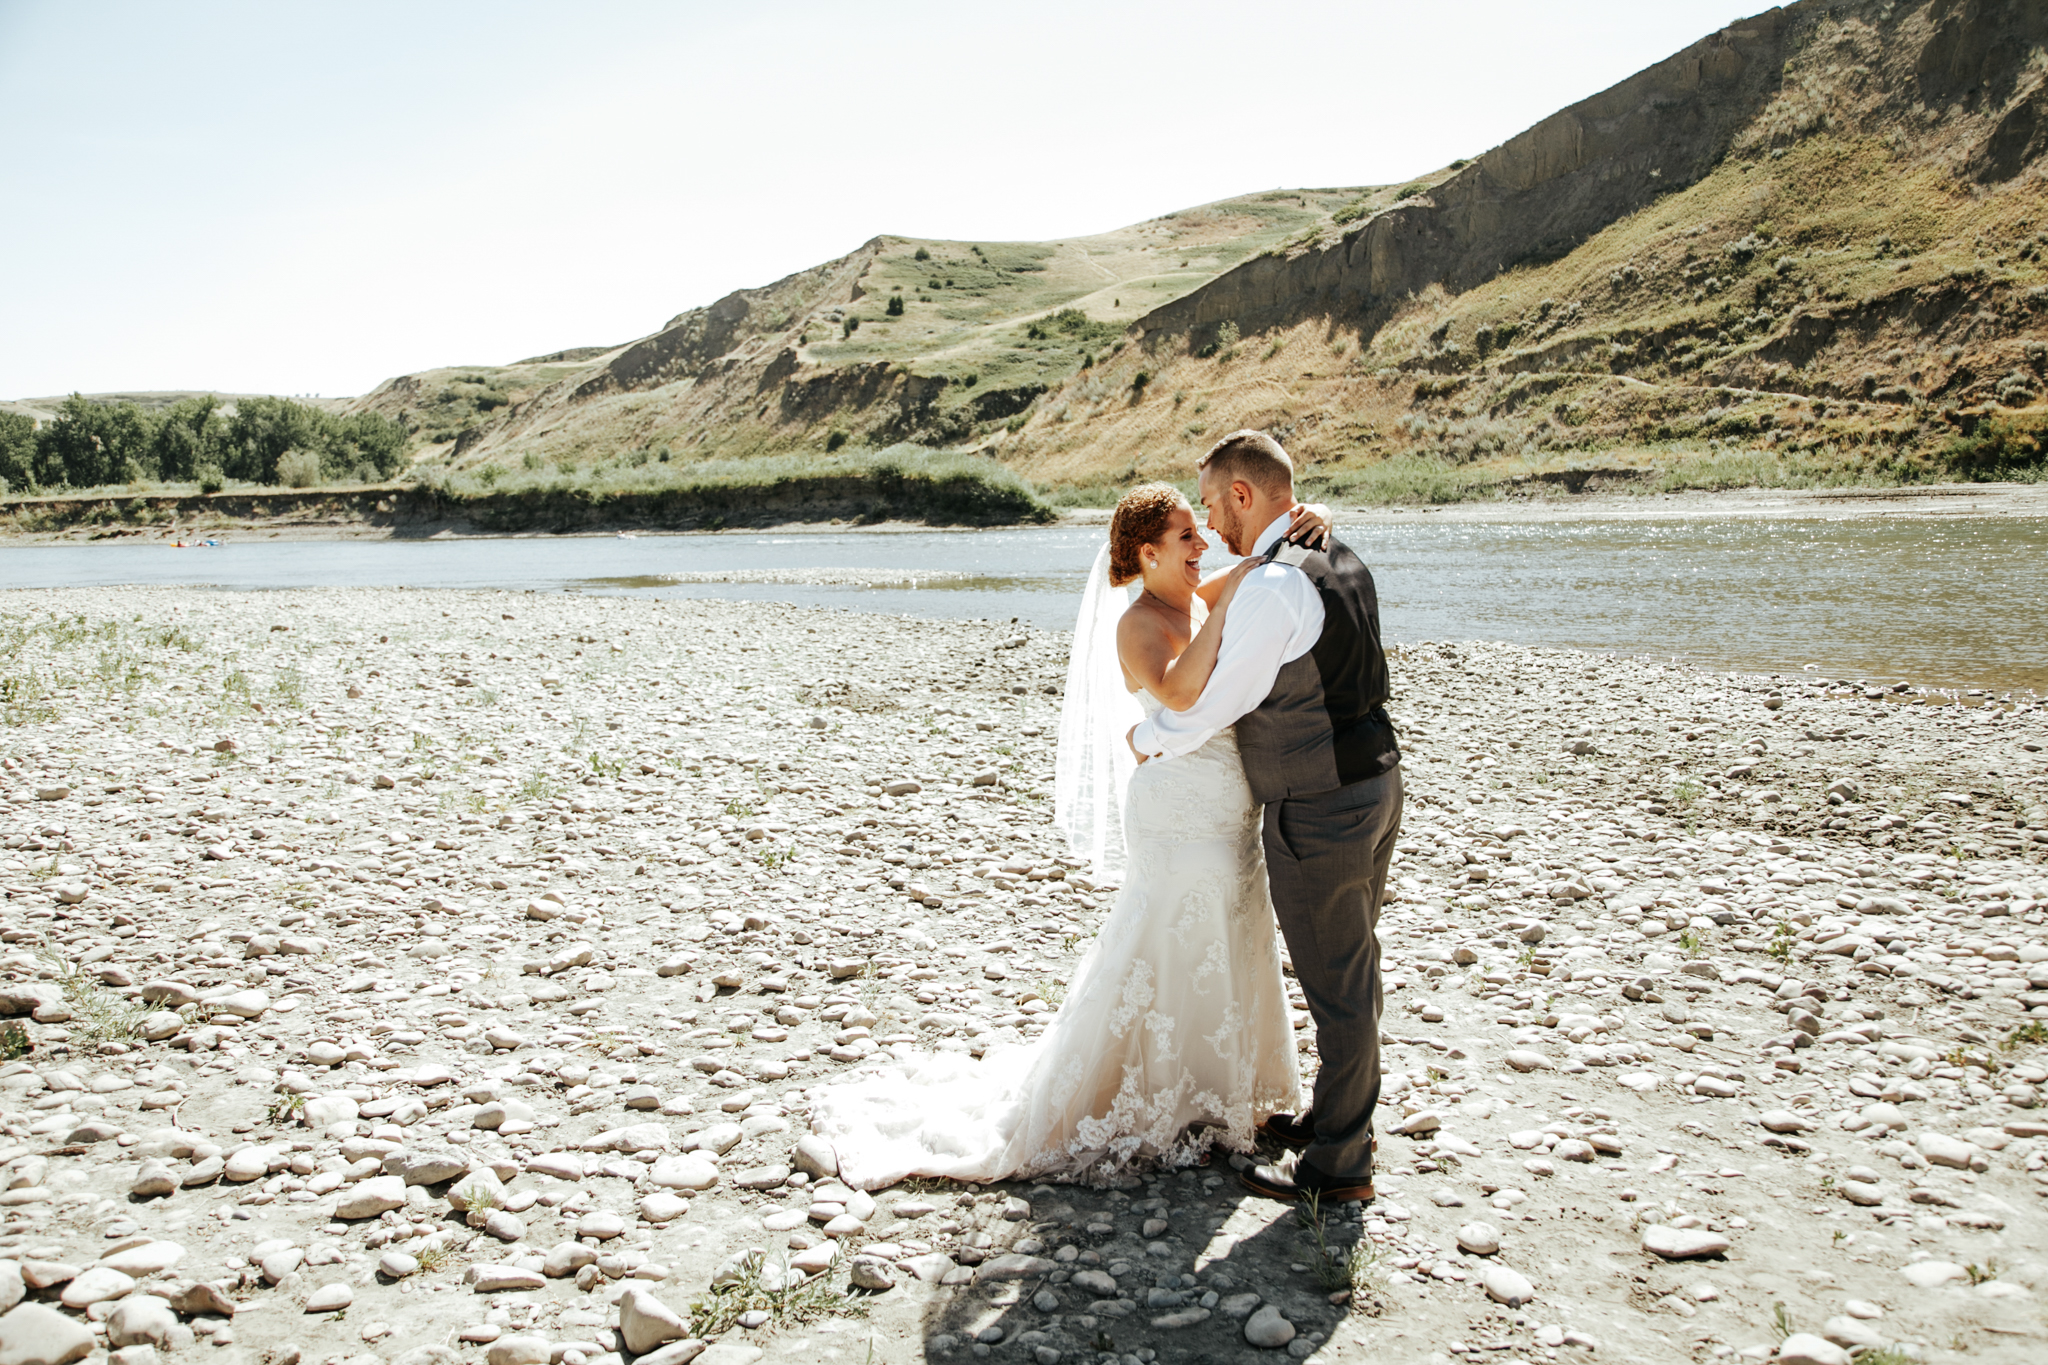 lethbridge-wedding-photographer-love-and-be-loved-photography-trent-danielle-galt-reception-picture-image-photo-127.jpg